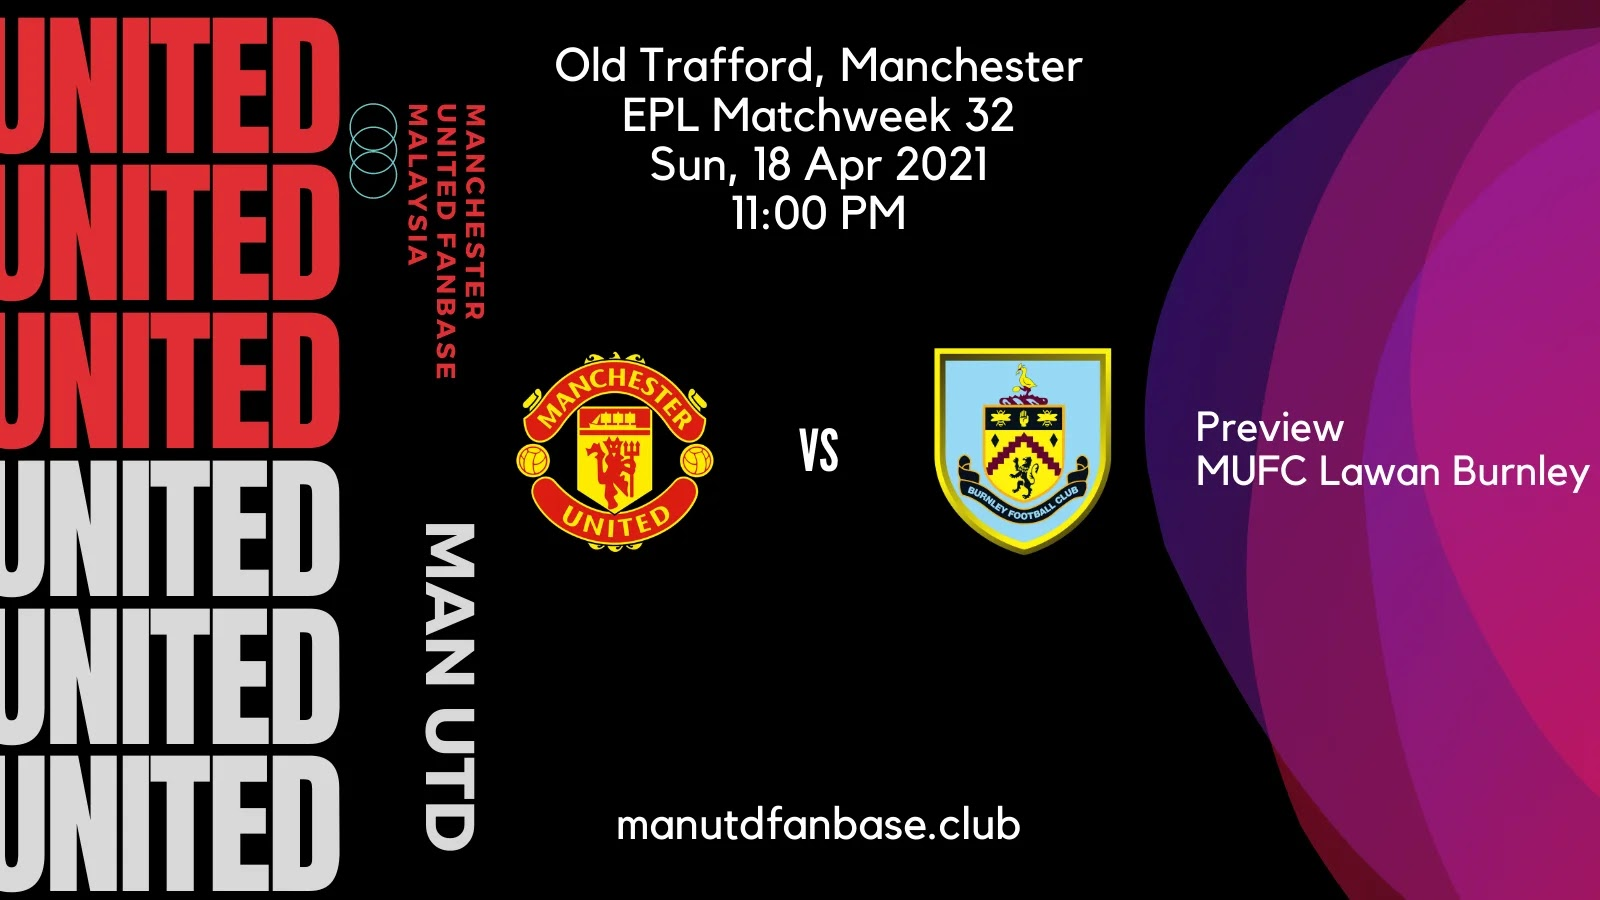 Preview Manchester United Lawan Burnley PL Pekan 32